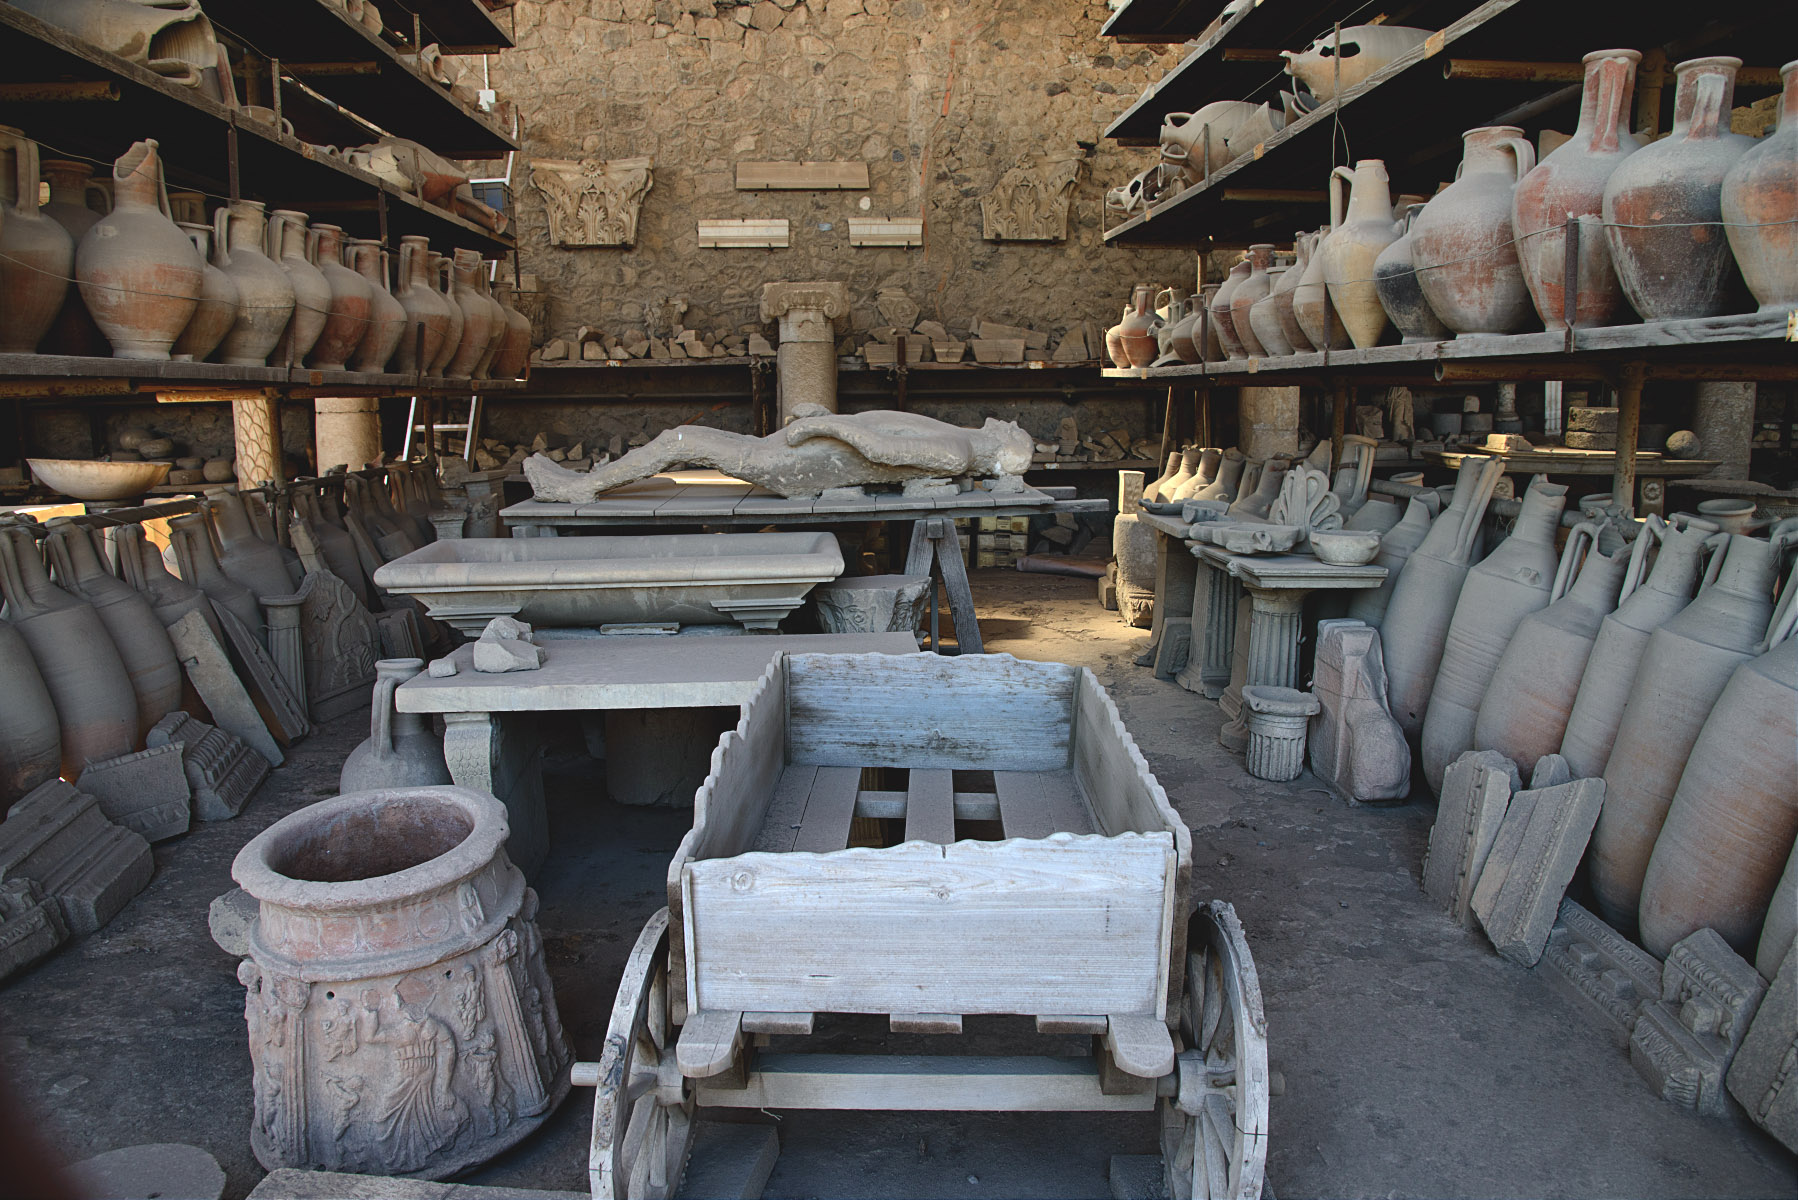 Pompeii, the granary market (VII. 7. 29), now used as a deposit store for supplies and artifacts.  Pompeii, VII. 7. 29